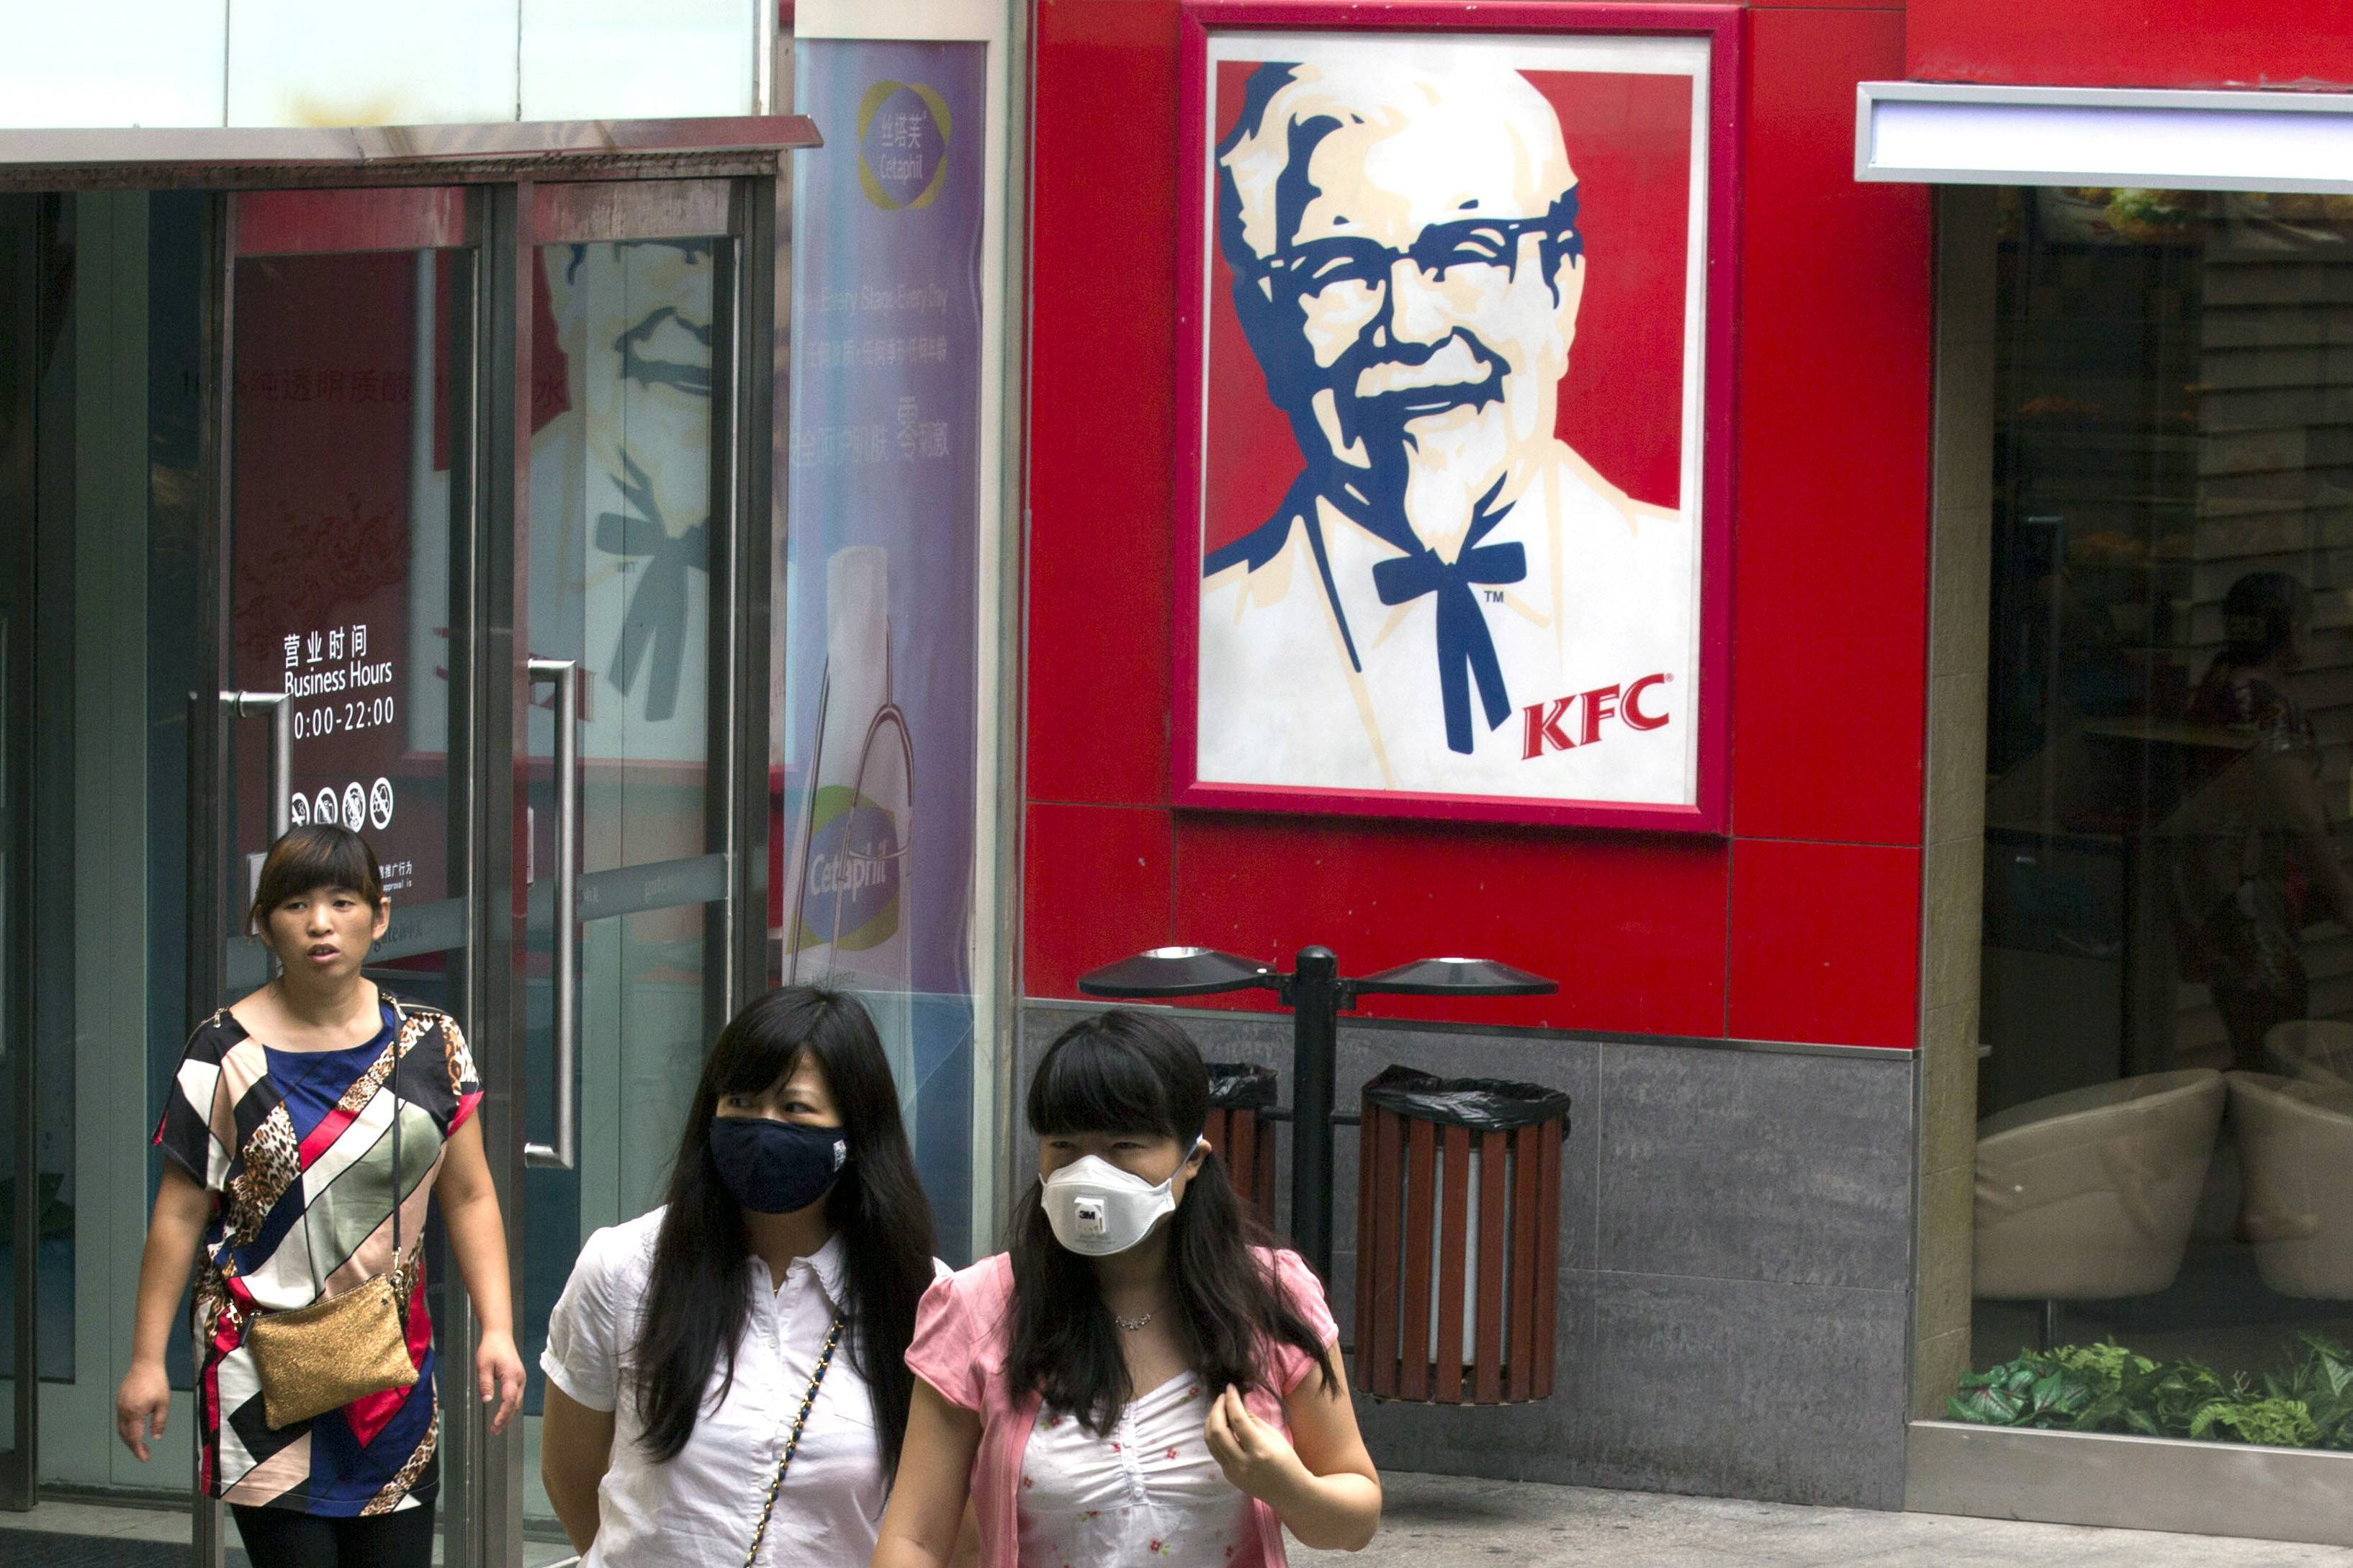 Women wearing masks during a polluted day walk outside a KFC restaurant in Beijing, China, Thursday, July 31, 2014. Already China's biggest restaurant operator with 4,600 outlets, KFC the Louisville, Kentucky-based chain is reeling after a Chinese supplier was accused of selling expired beef and chicken to it, McDonald's and possibly other restaurant chains. Just 18 months earlier, KFC's sales plunged in China after a supplier violated rules on drug use in chickens.(AP Photo/Ng Han Guan)